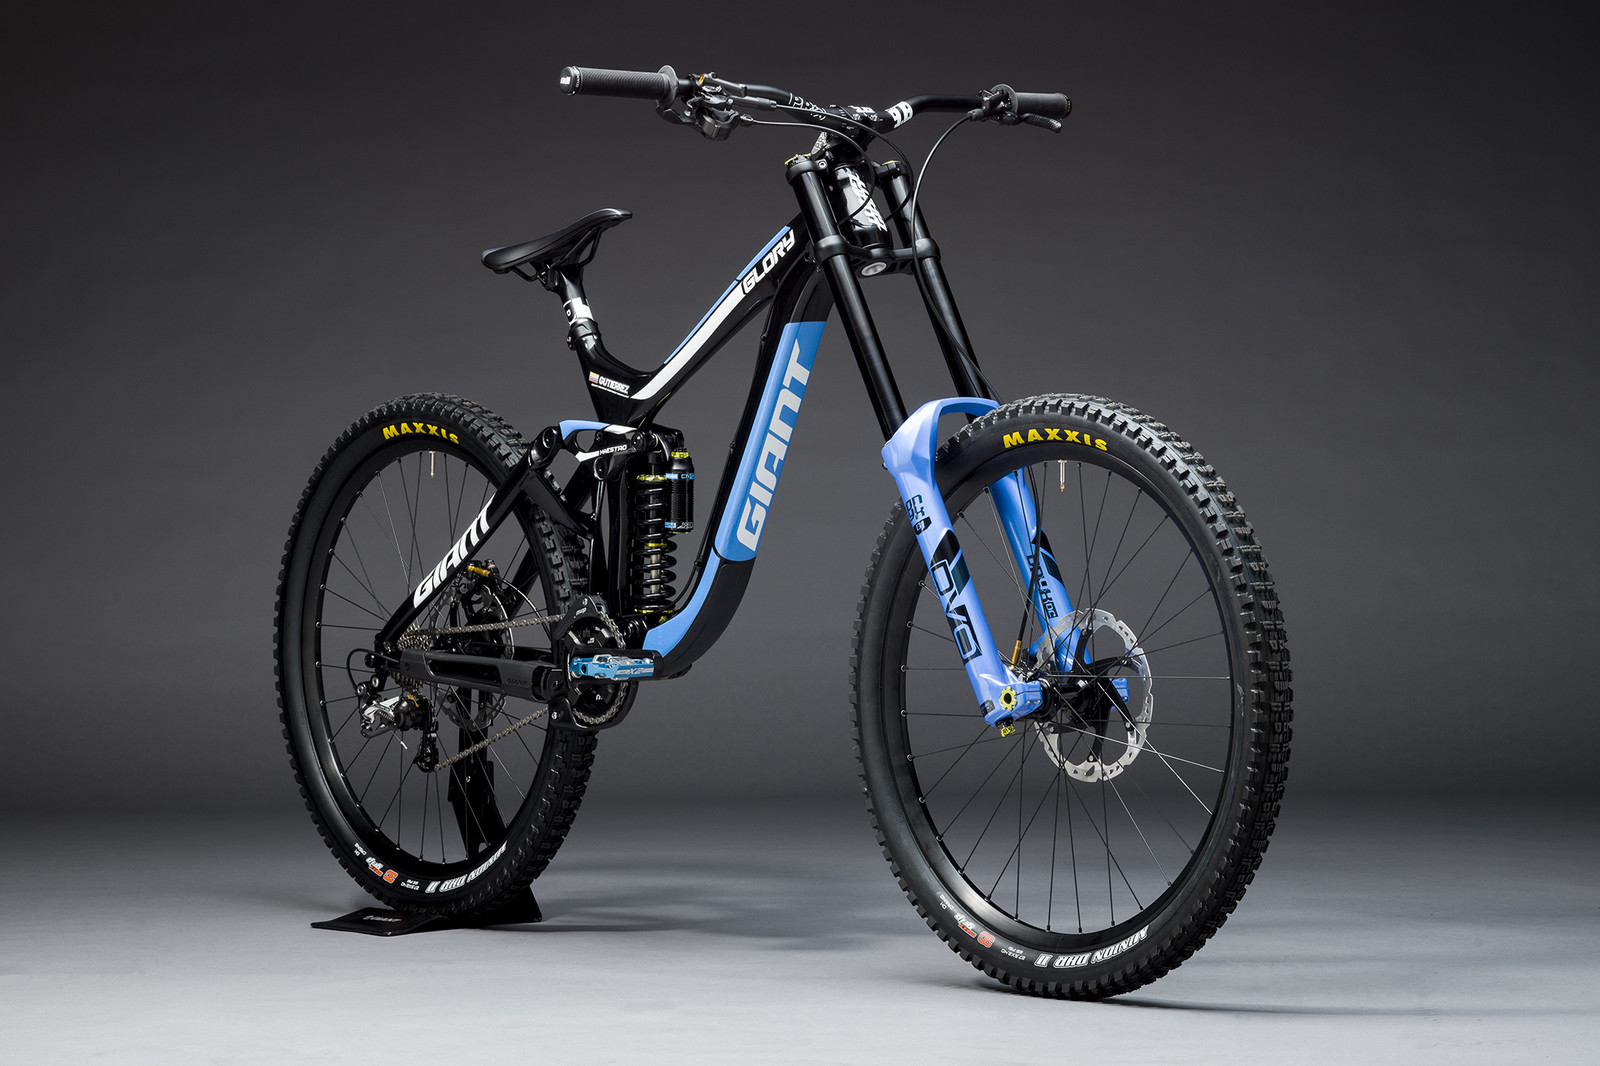 2018 Giant Factory Off-Road Team Bikes - Marcelo Gutierrez's Giant Glory Advanced - Giant ...